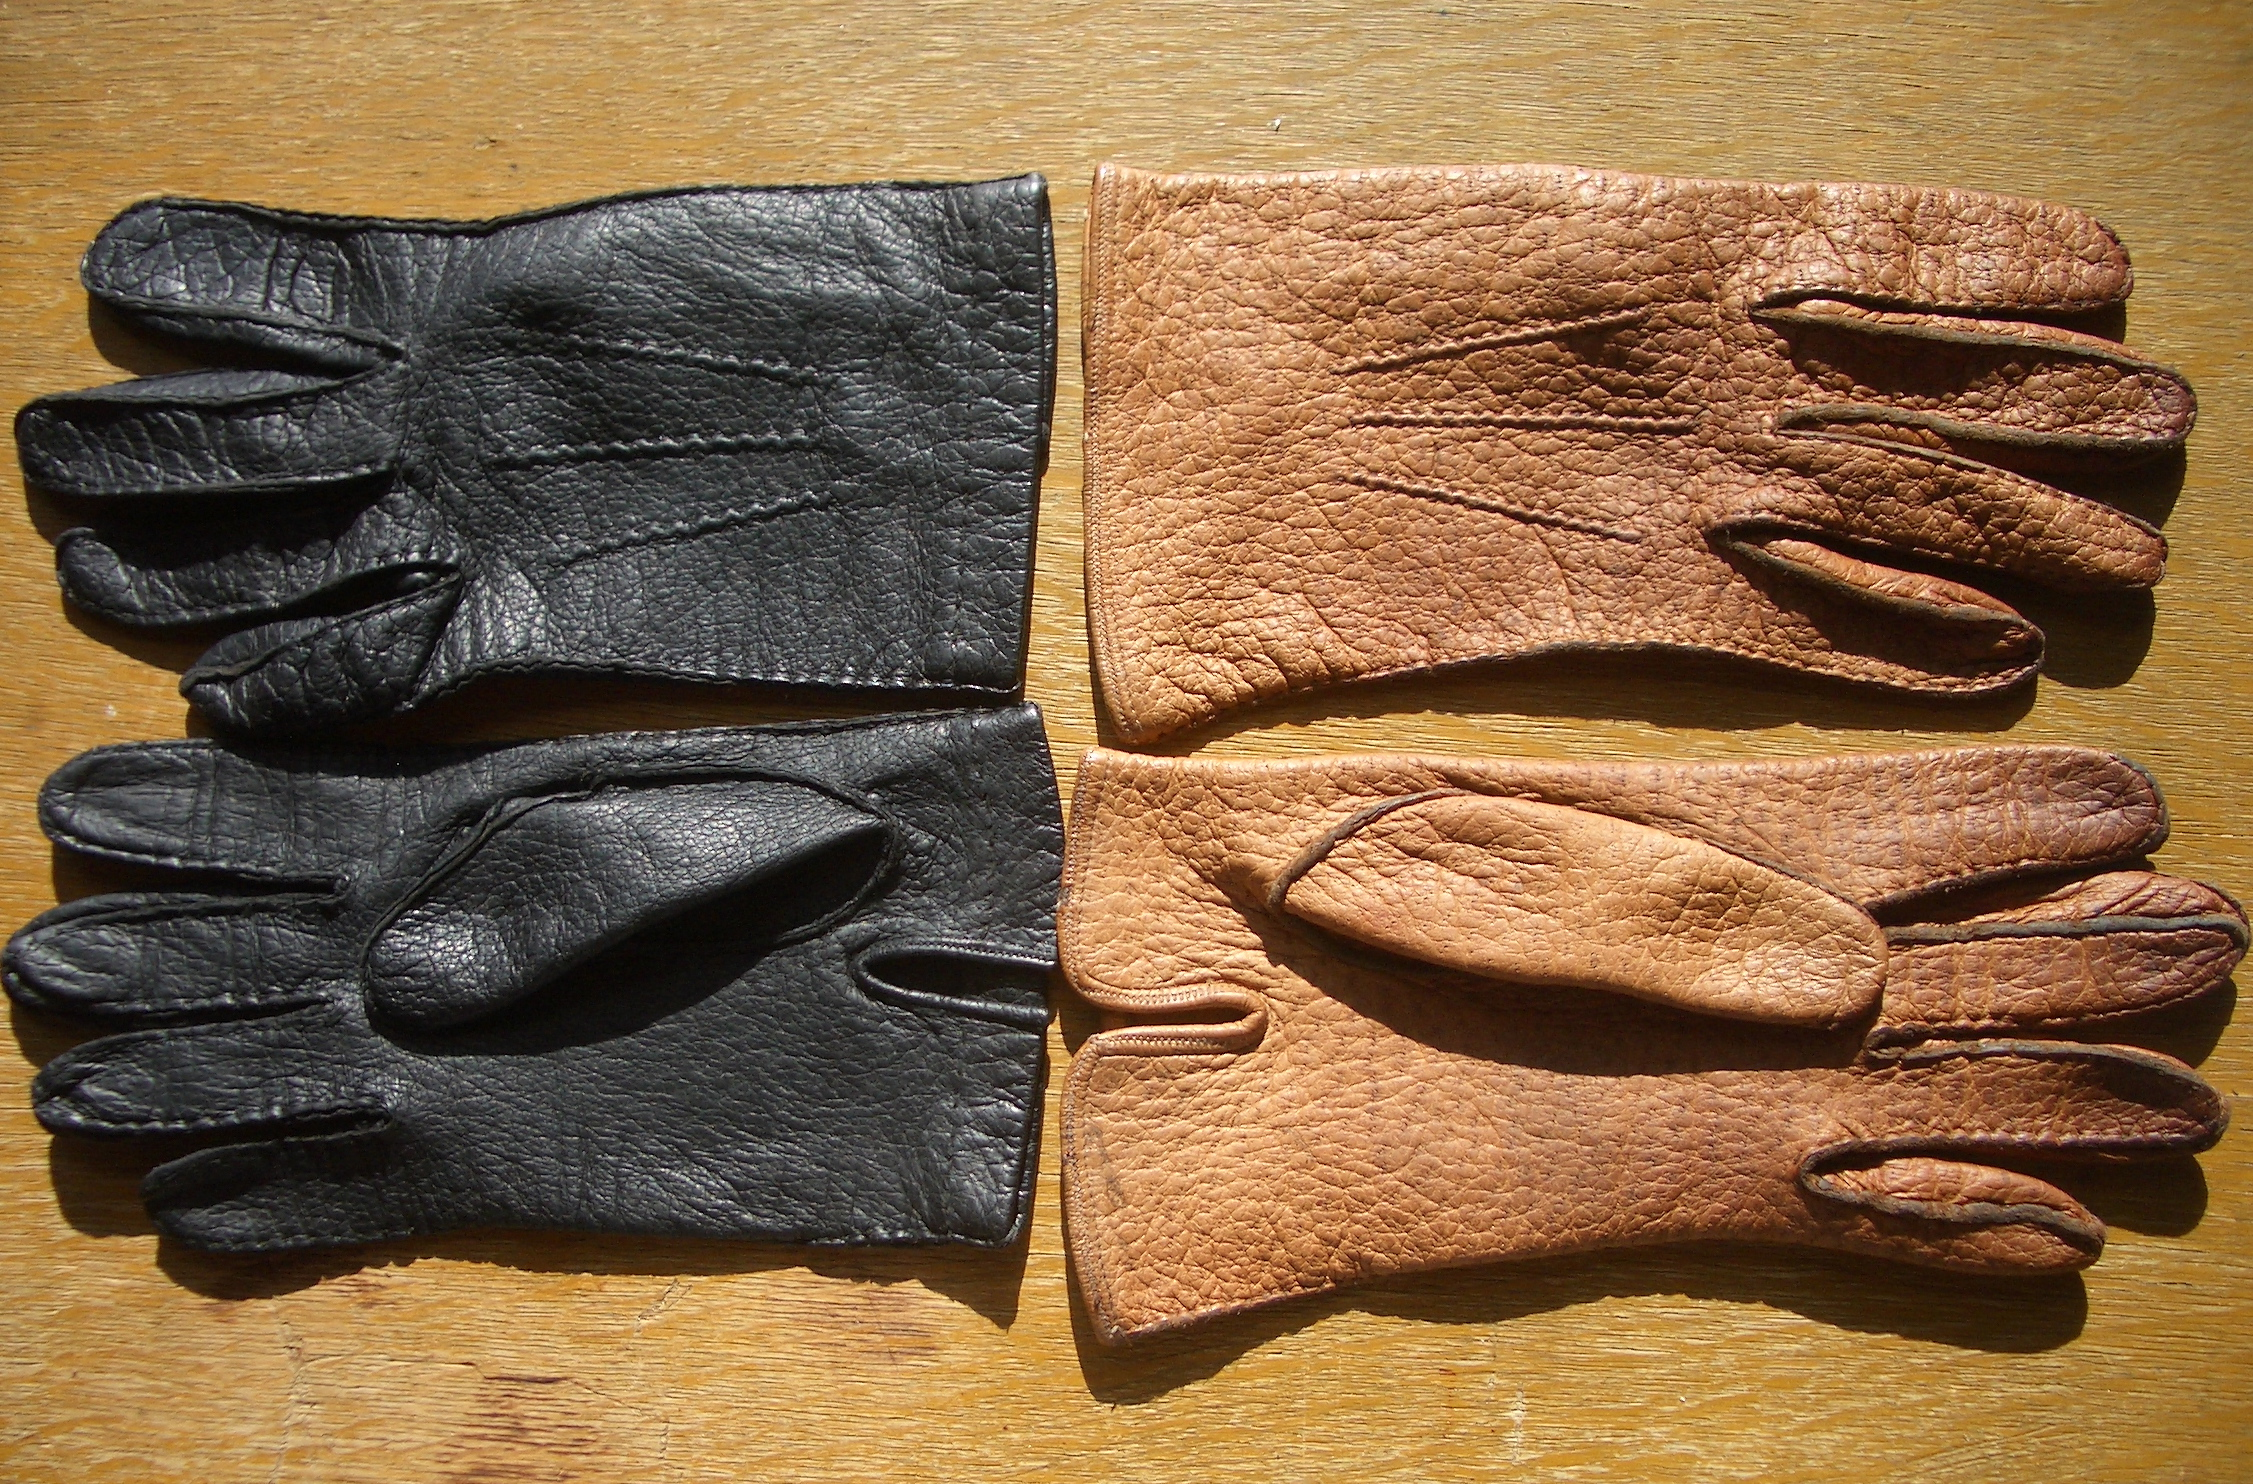 Driving gloves styleforum - Have Been Using And Abusing These For The Past Few Years Very Durable